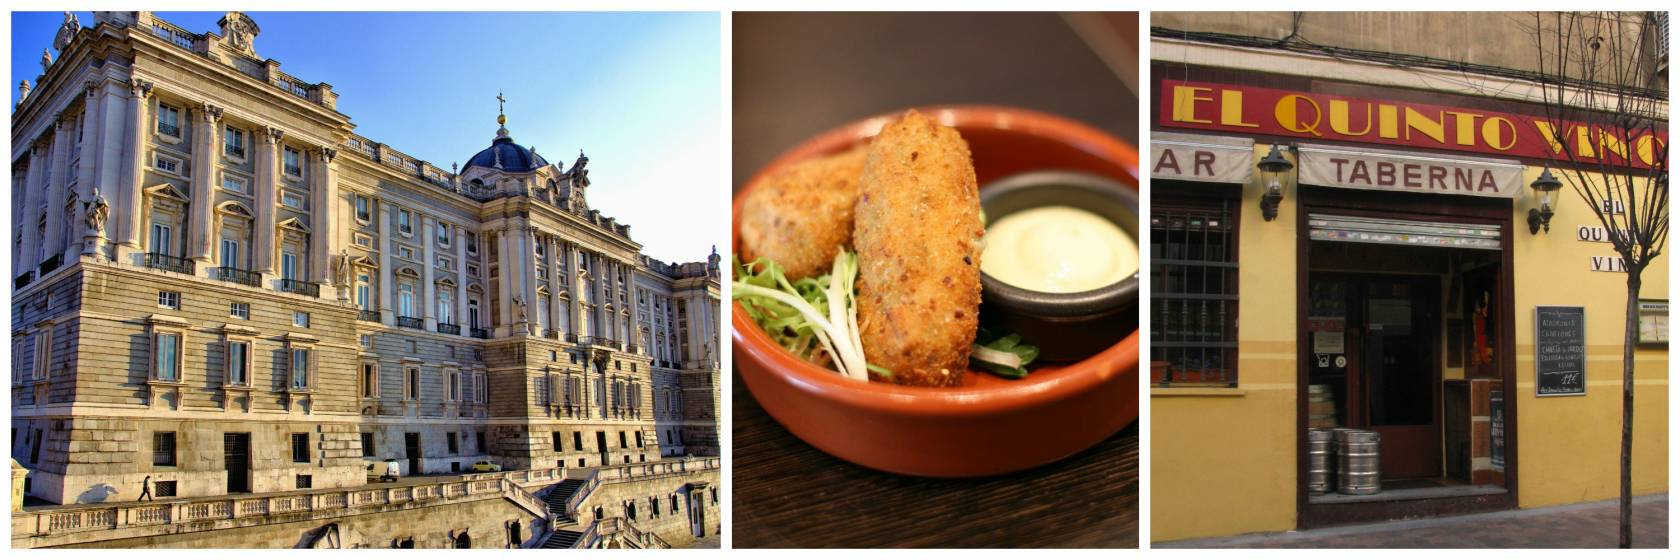 Croquettes are an ideal comfort food in Madrid